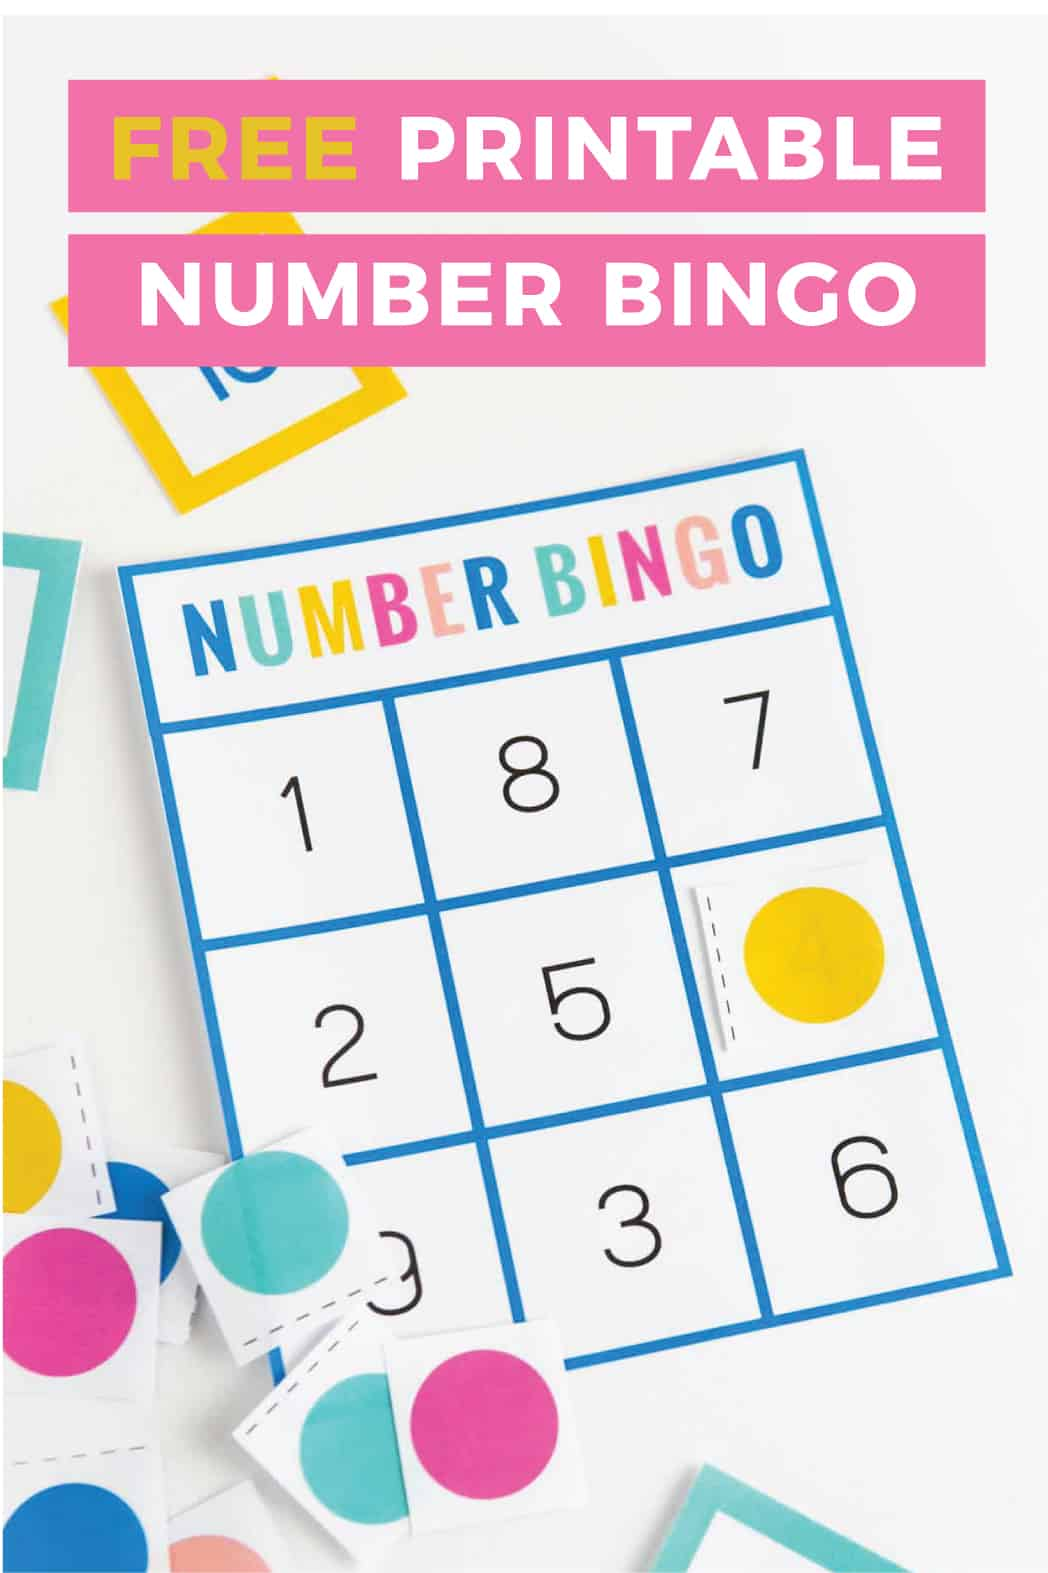 Download this free number bingo set help children learn and recognize numbers. Designed to use a small range of numbers 0-10, these printable bingo cards are perfect for preschool or kindergarten age kids!